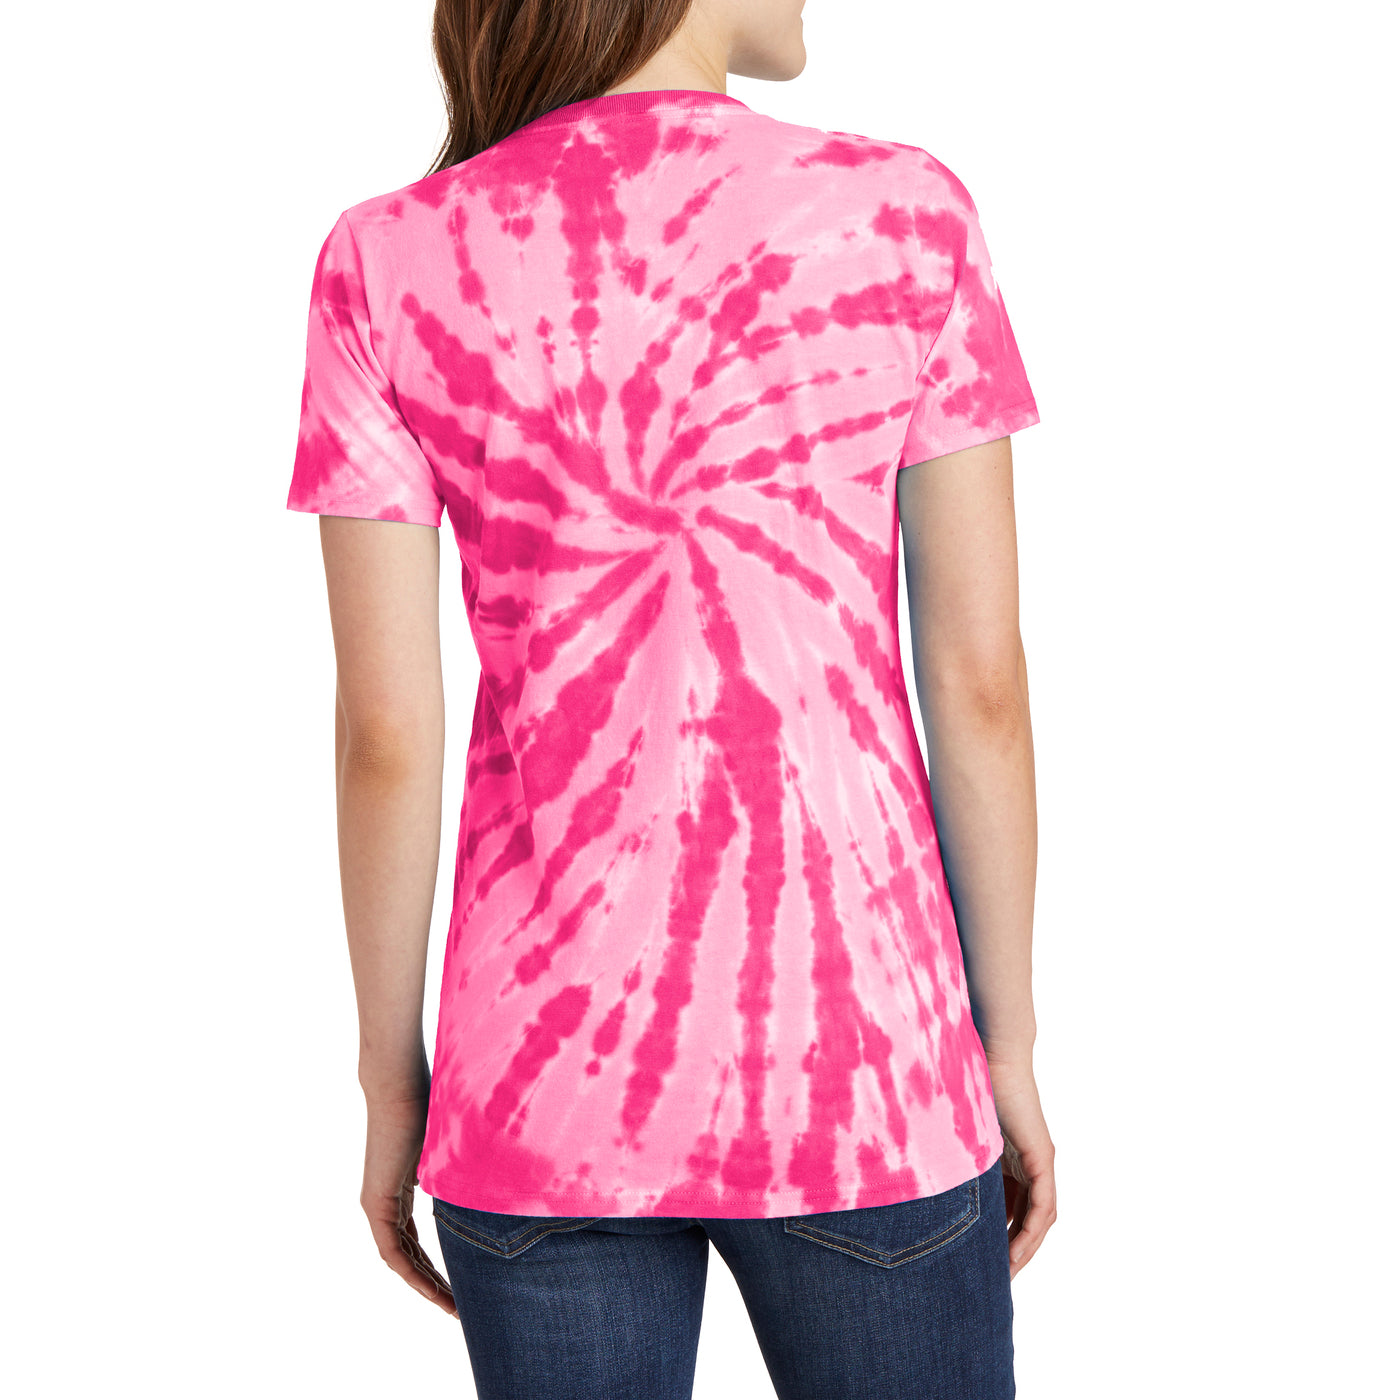 Womens Tie-Dye V-Neck Tee -  Pink - Back